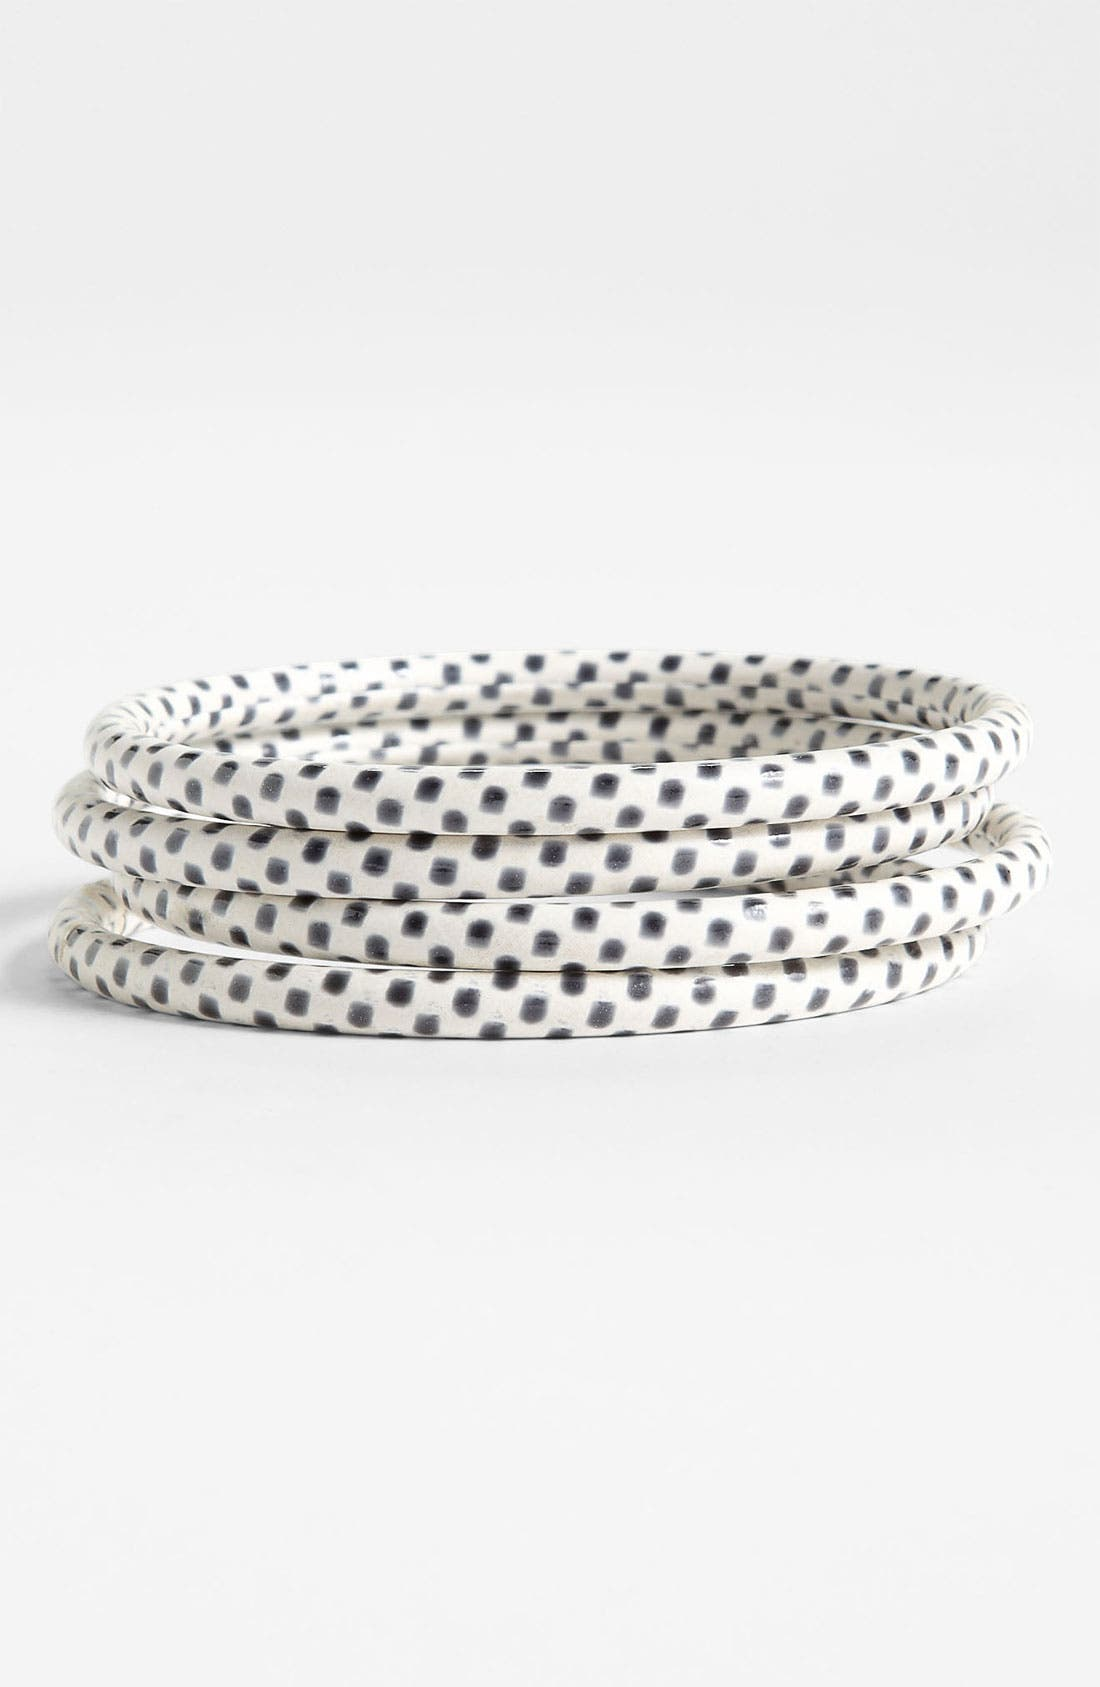 Alternate Image 1 Selected - Chamak by Priya Kakkar Polka Dot Bangles (Set of 4)